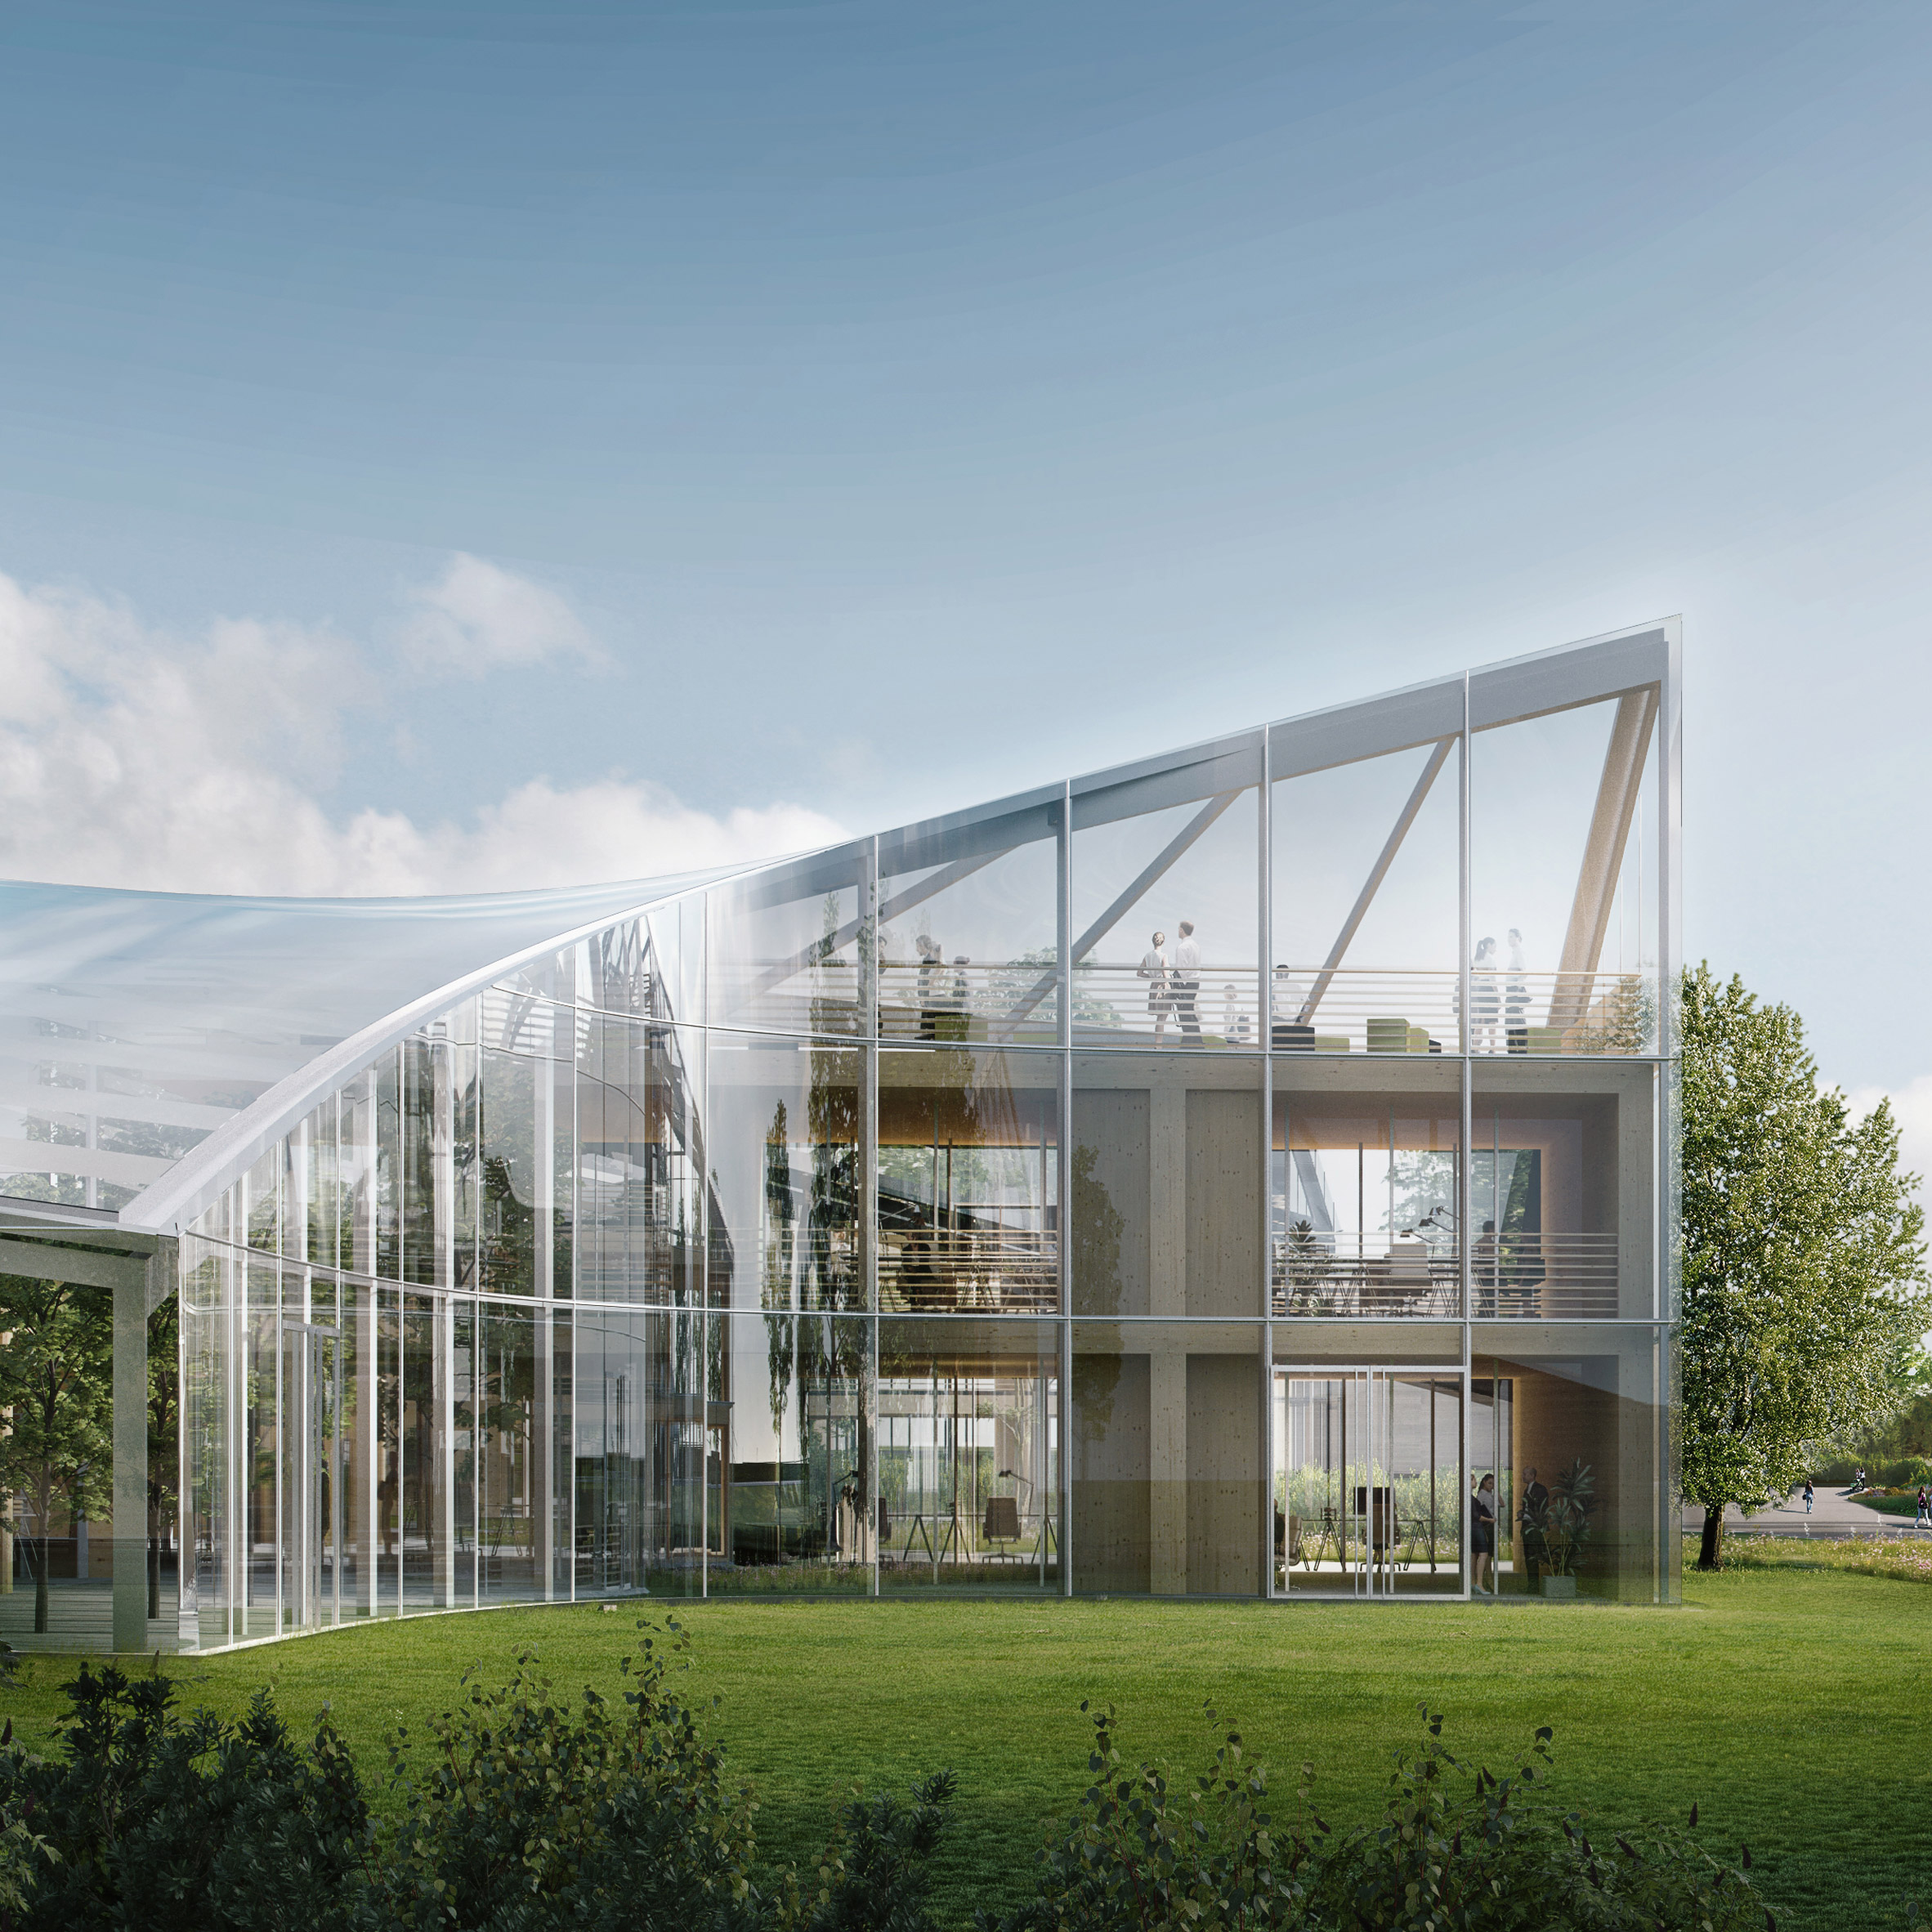 zaha hadid architects reveals greenhouse like technology hub to